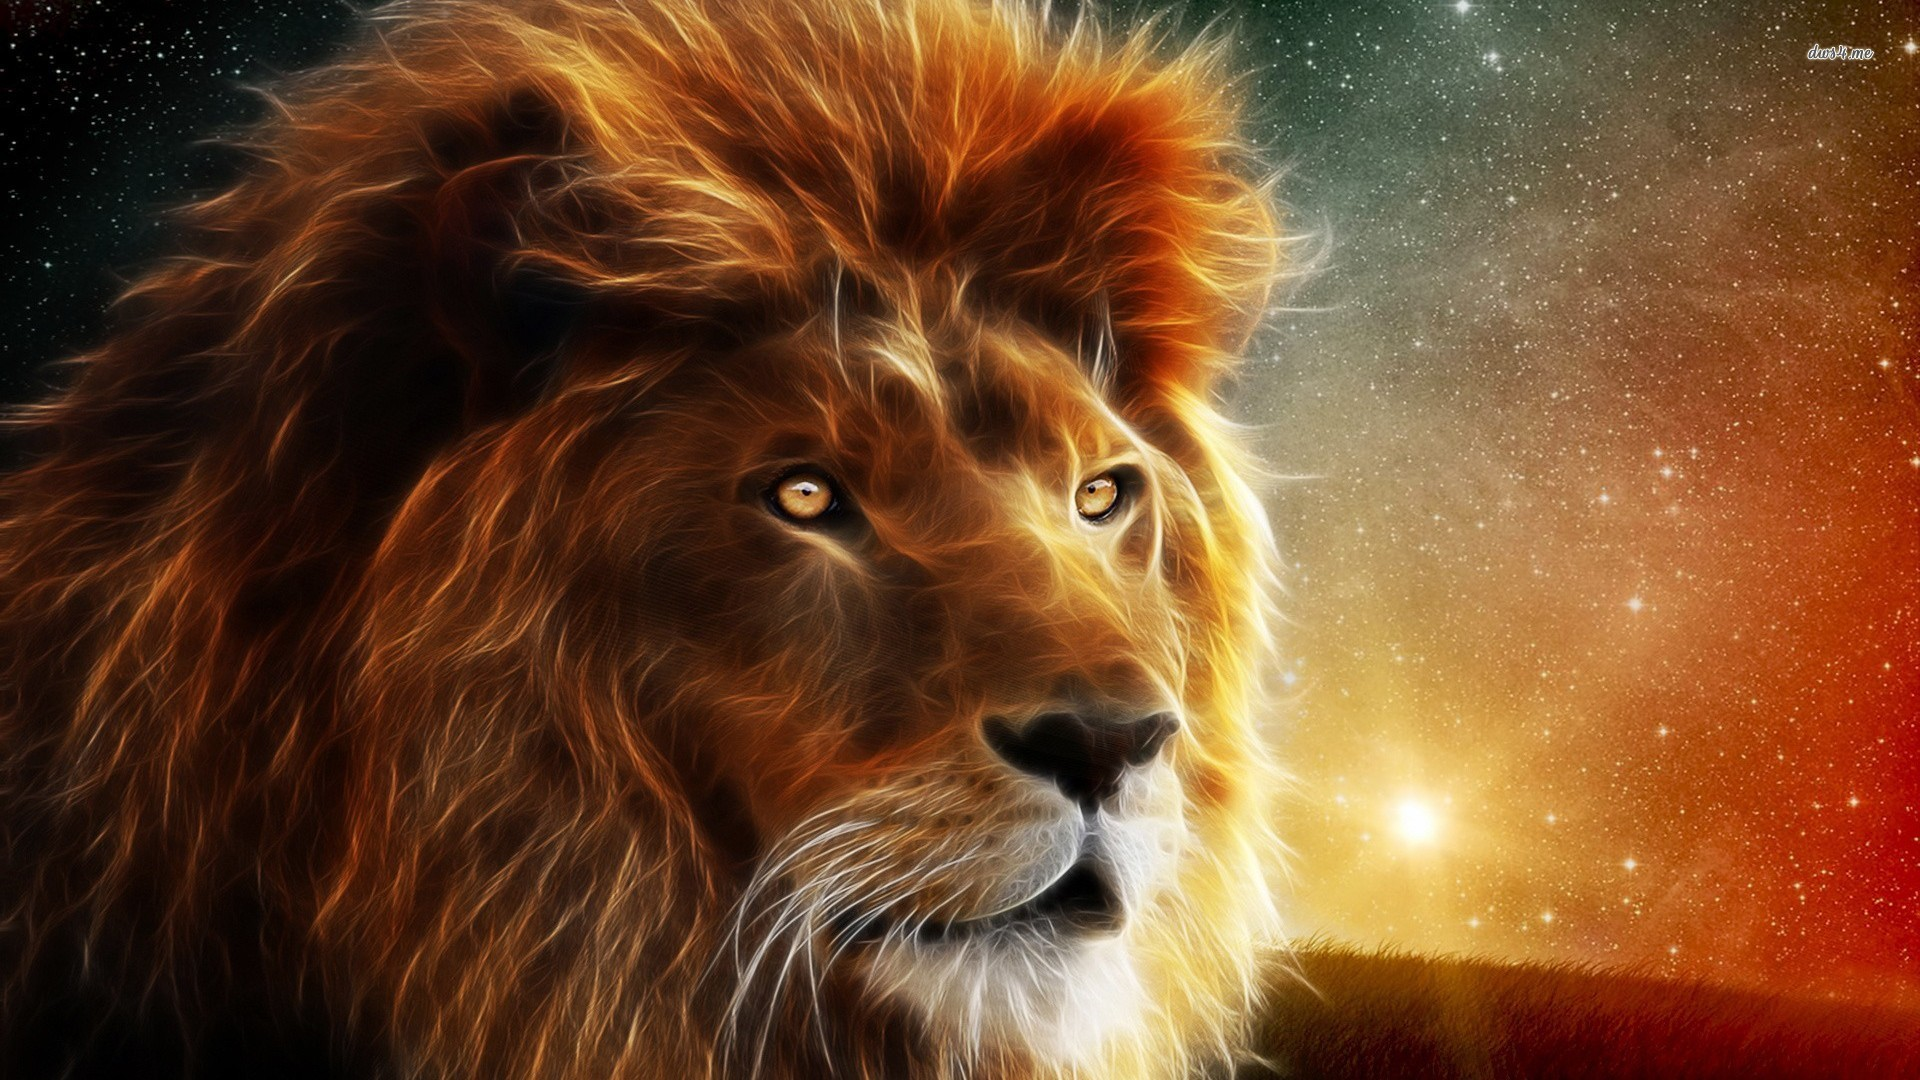 Res: 1920x1080, ... Glowing lion wallpaper ...